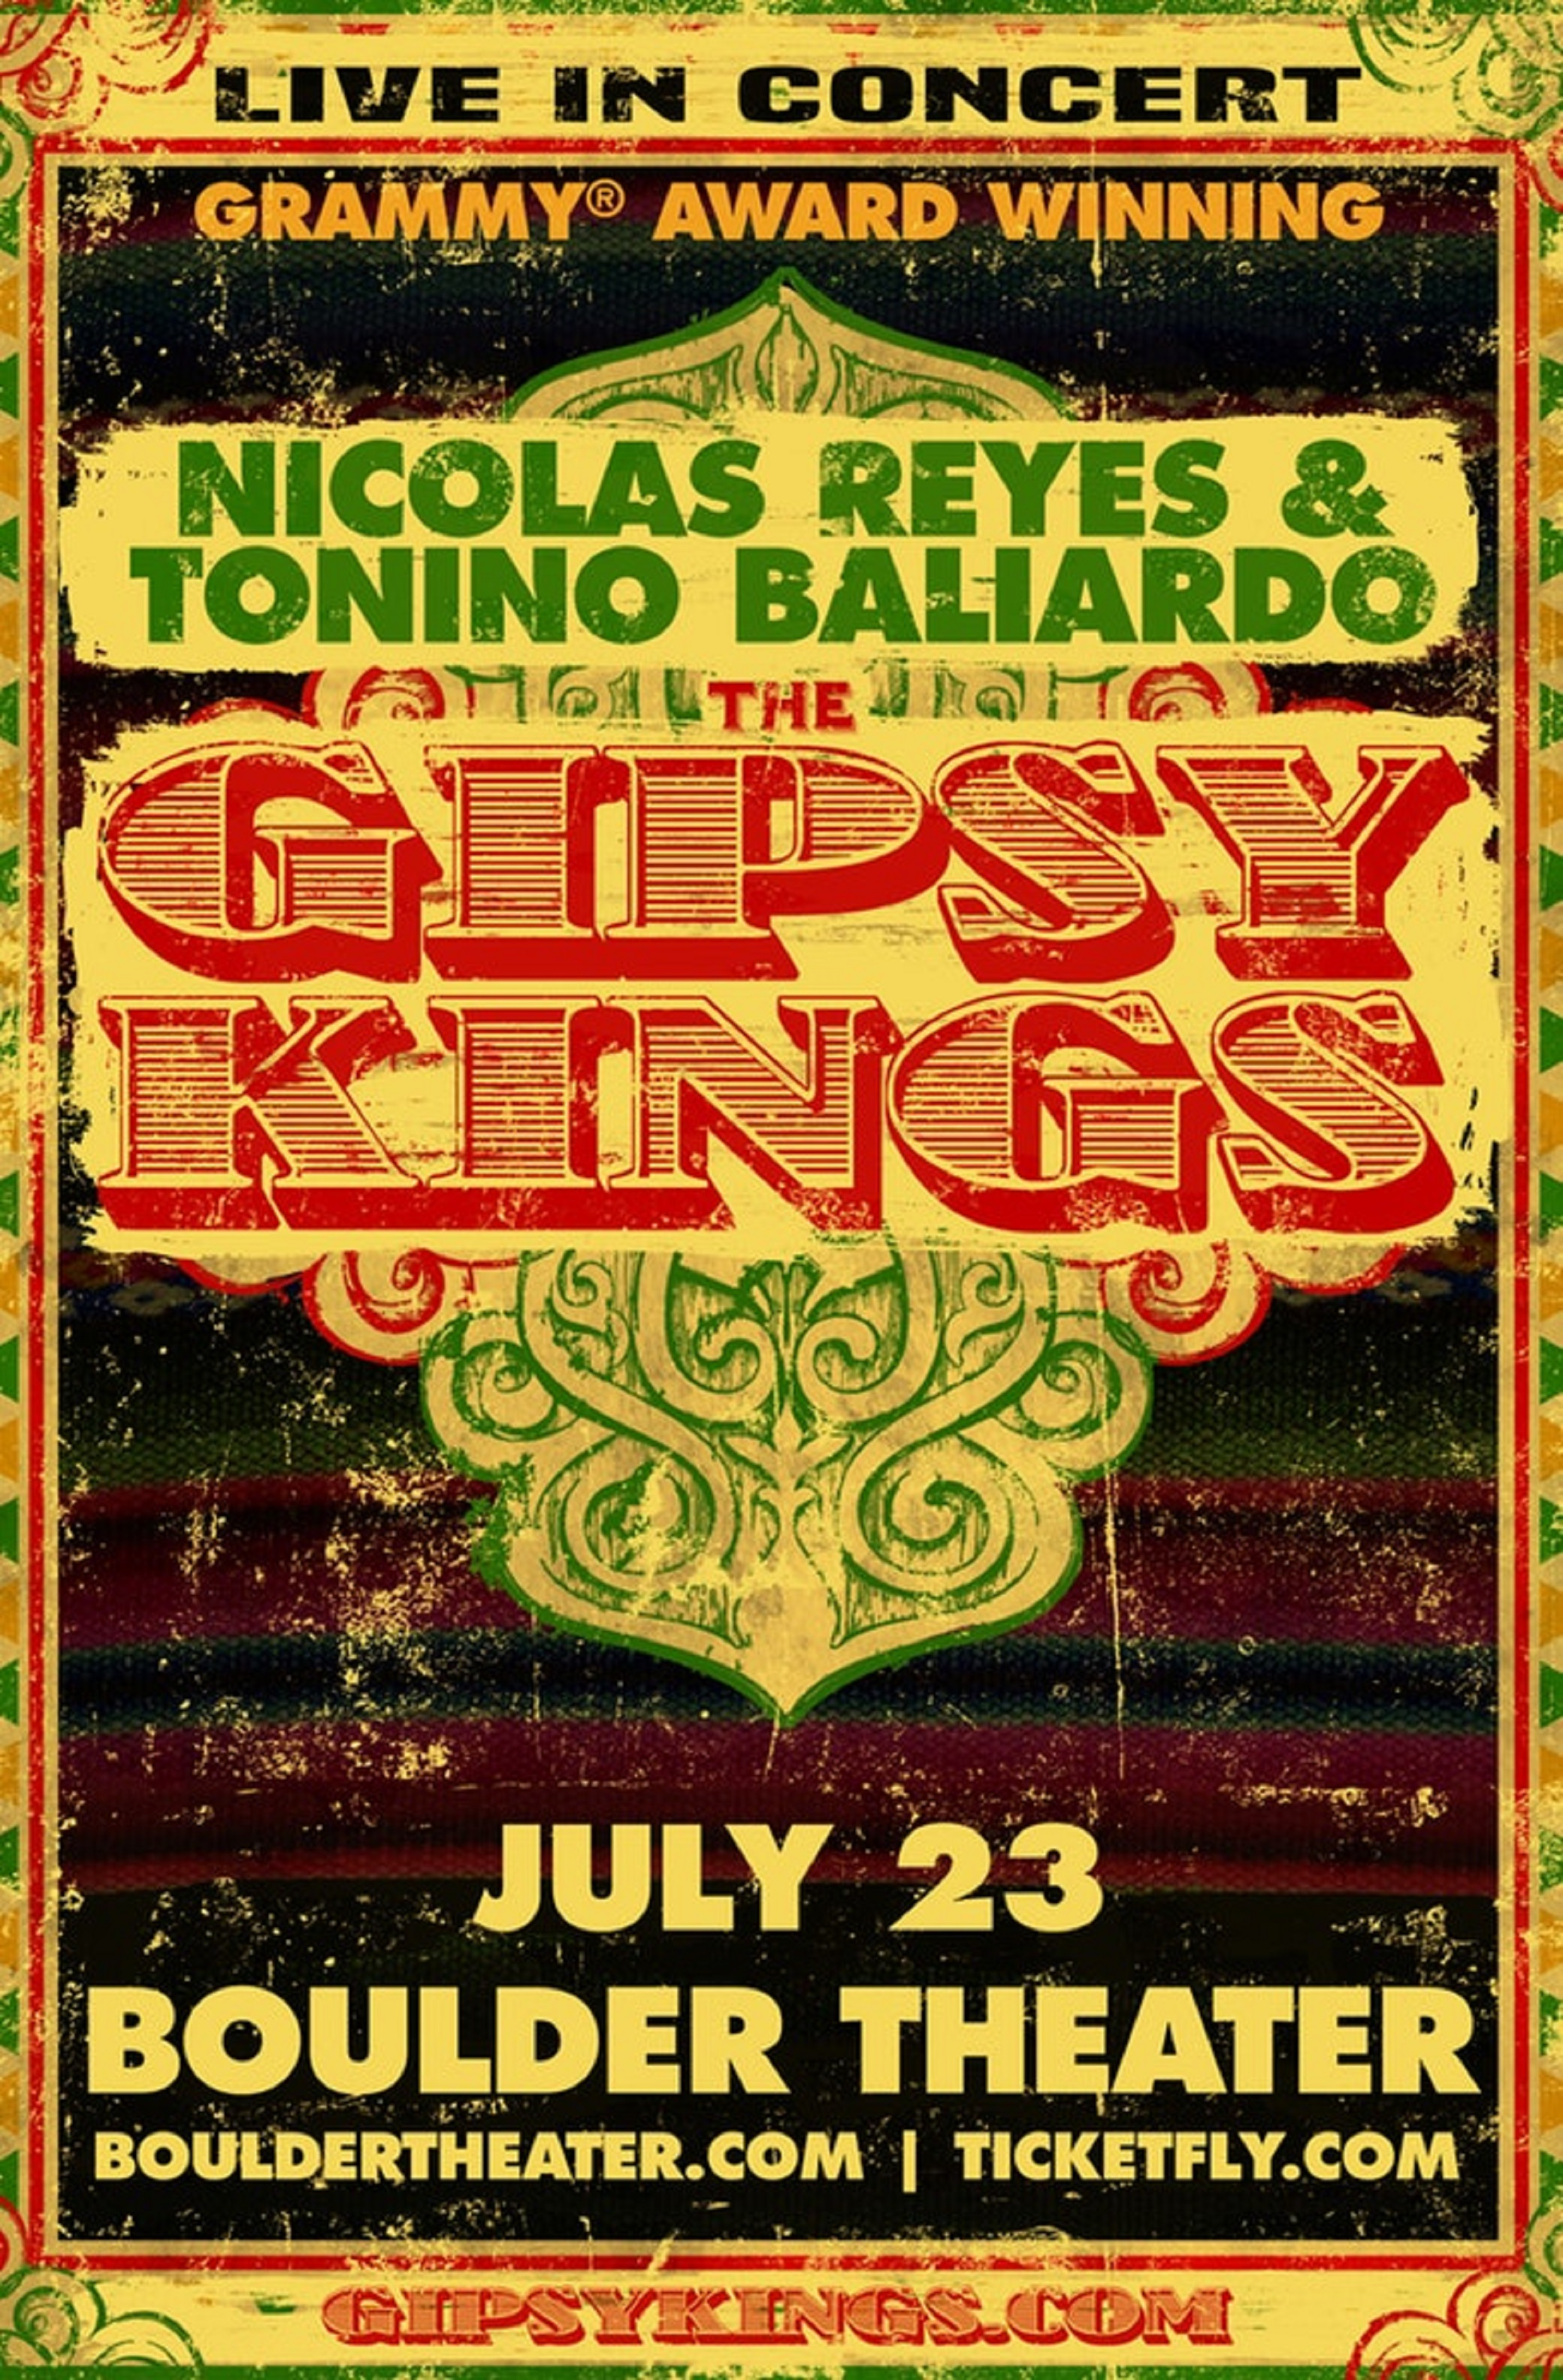 The Gipsy Kings will play the Boulder Theater this summer